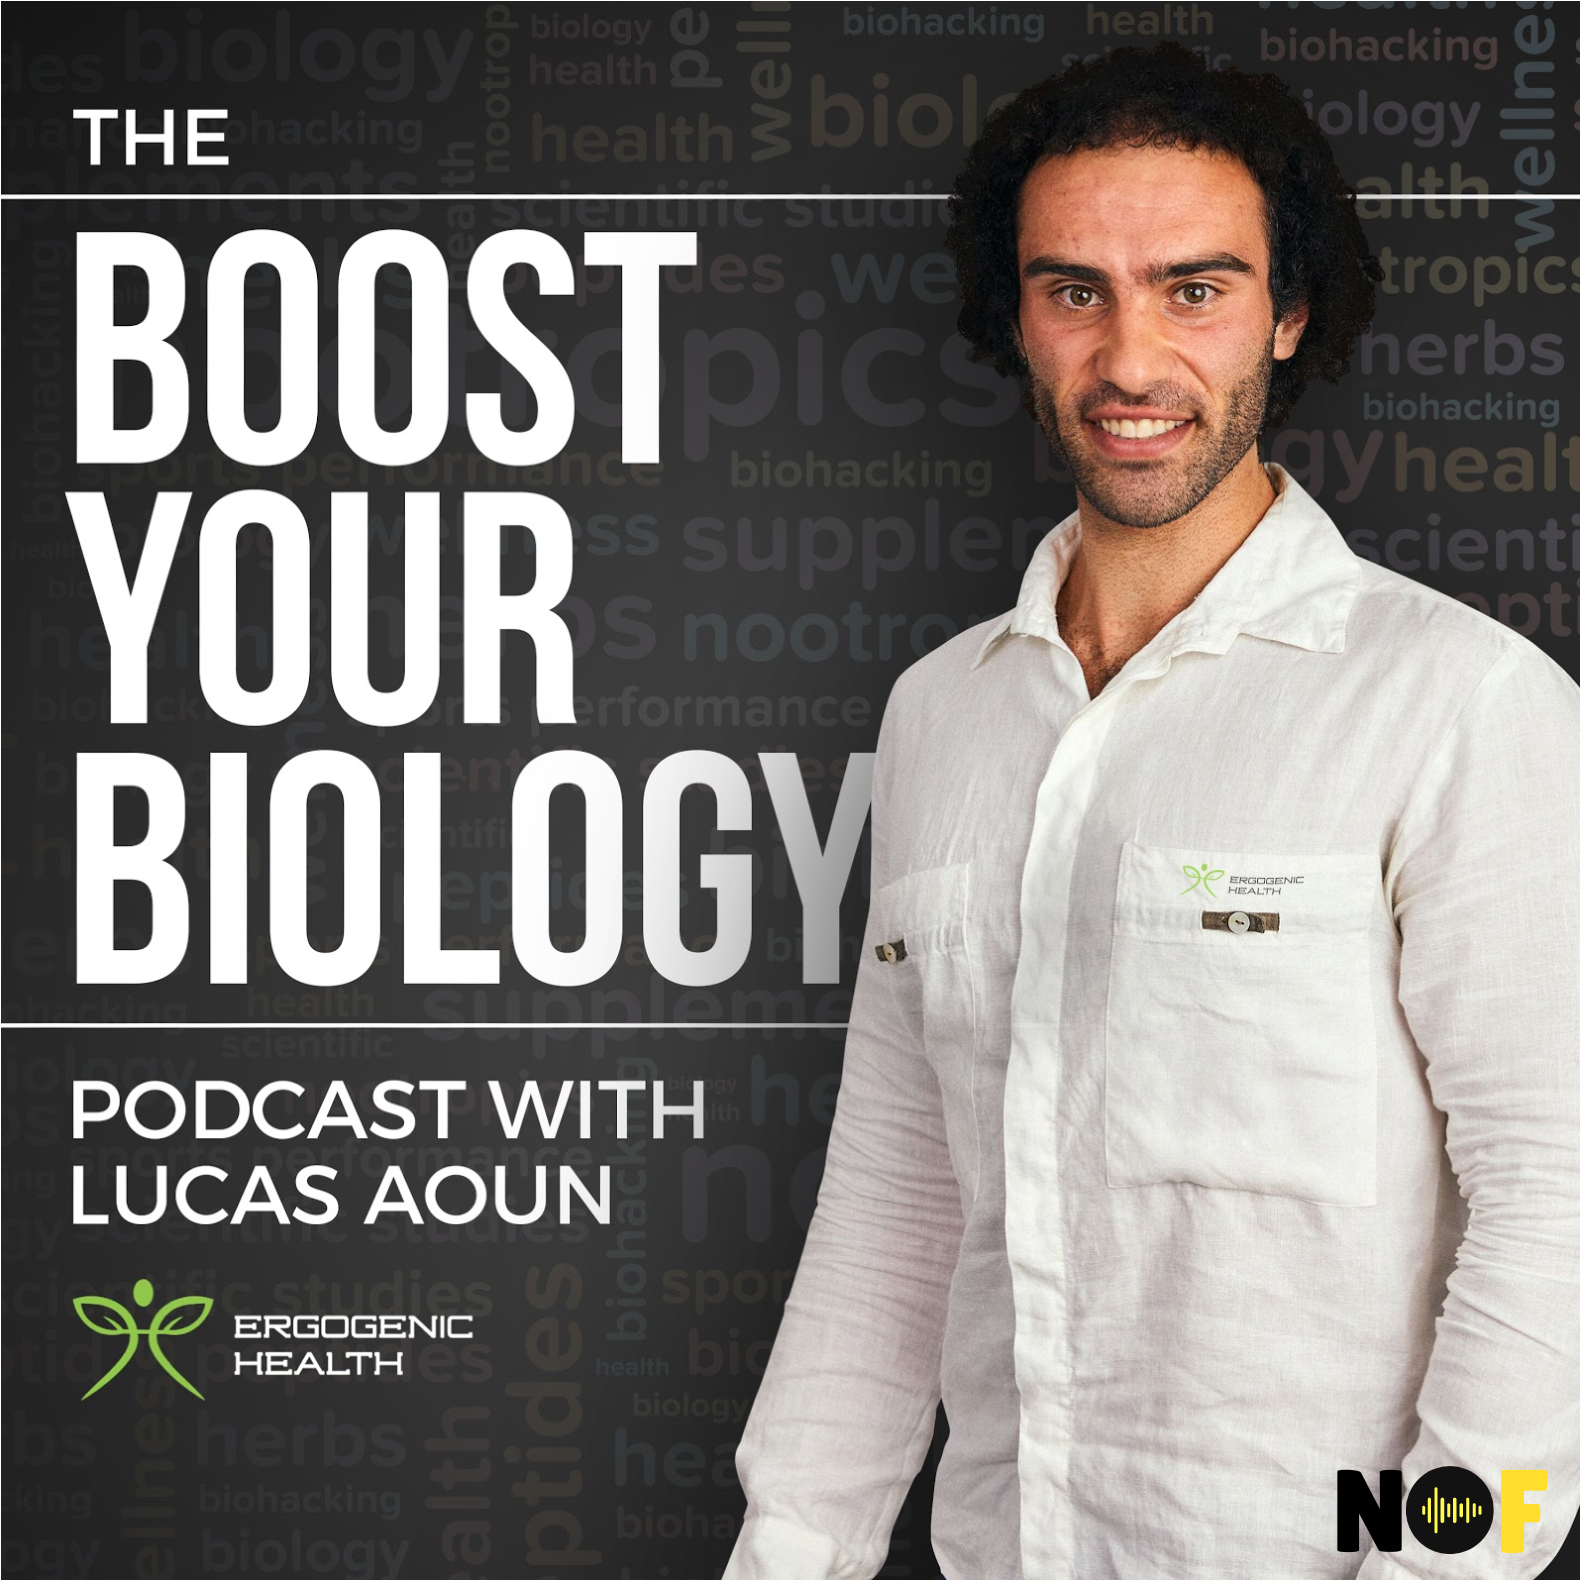 https://www.nofilter.media/podcast/boost-your-biology